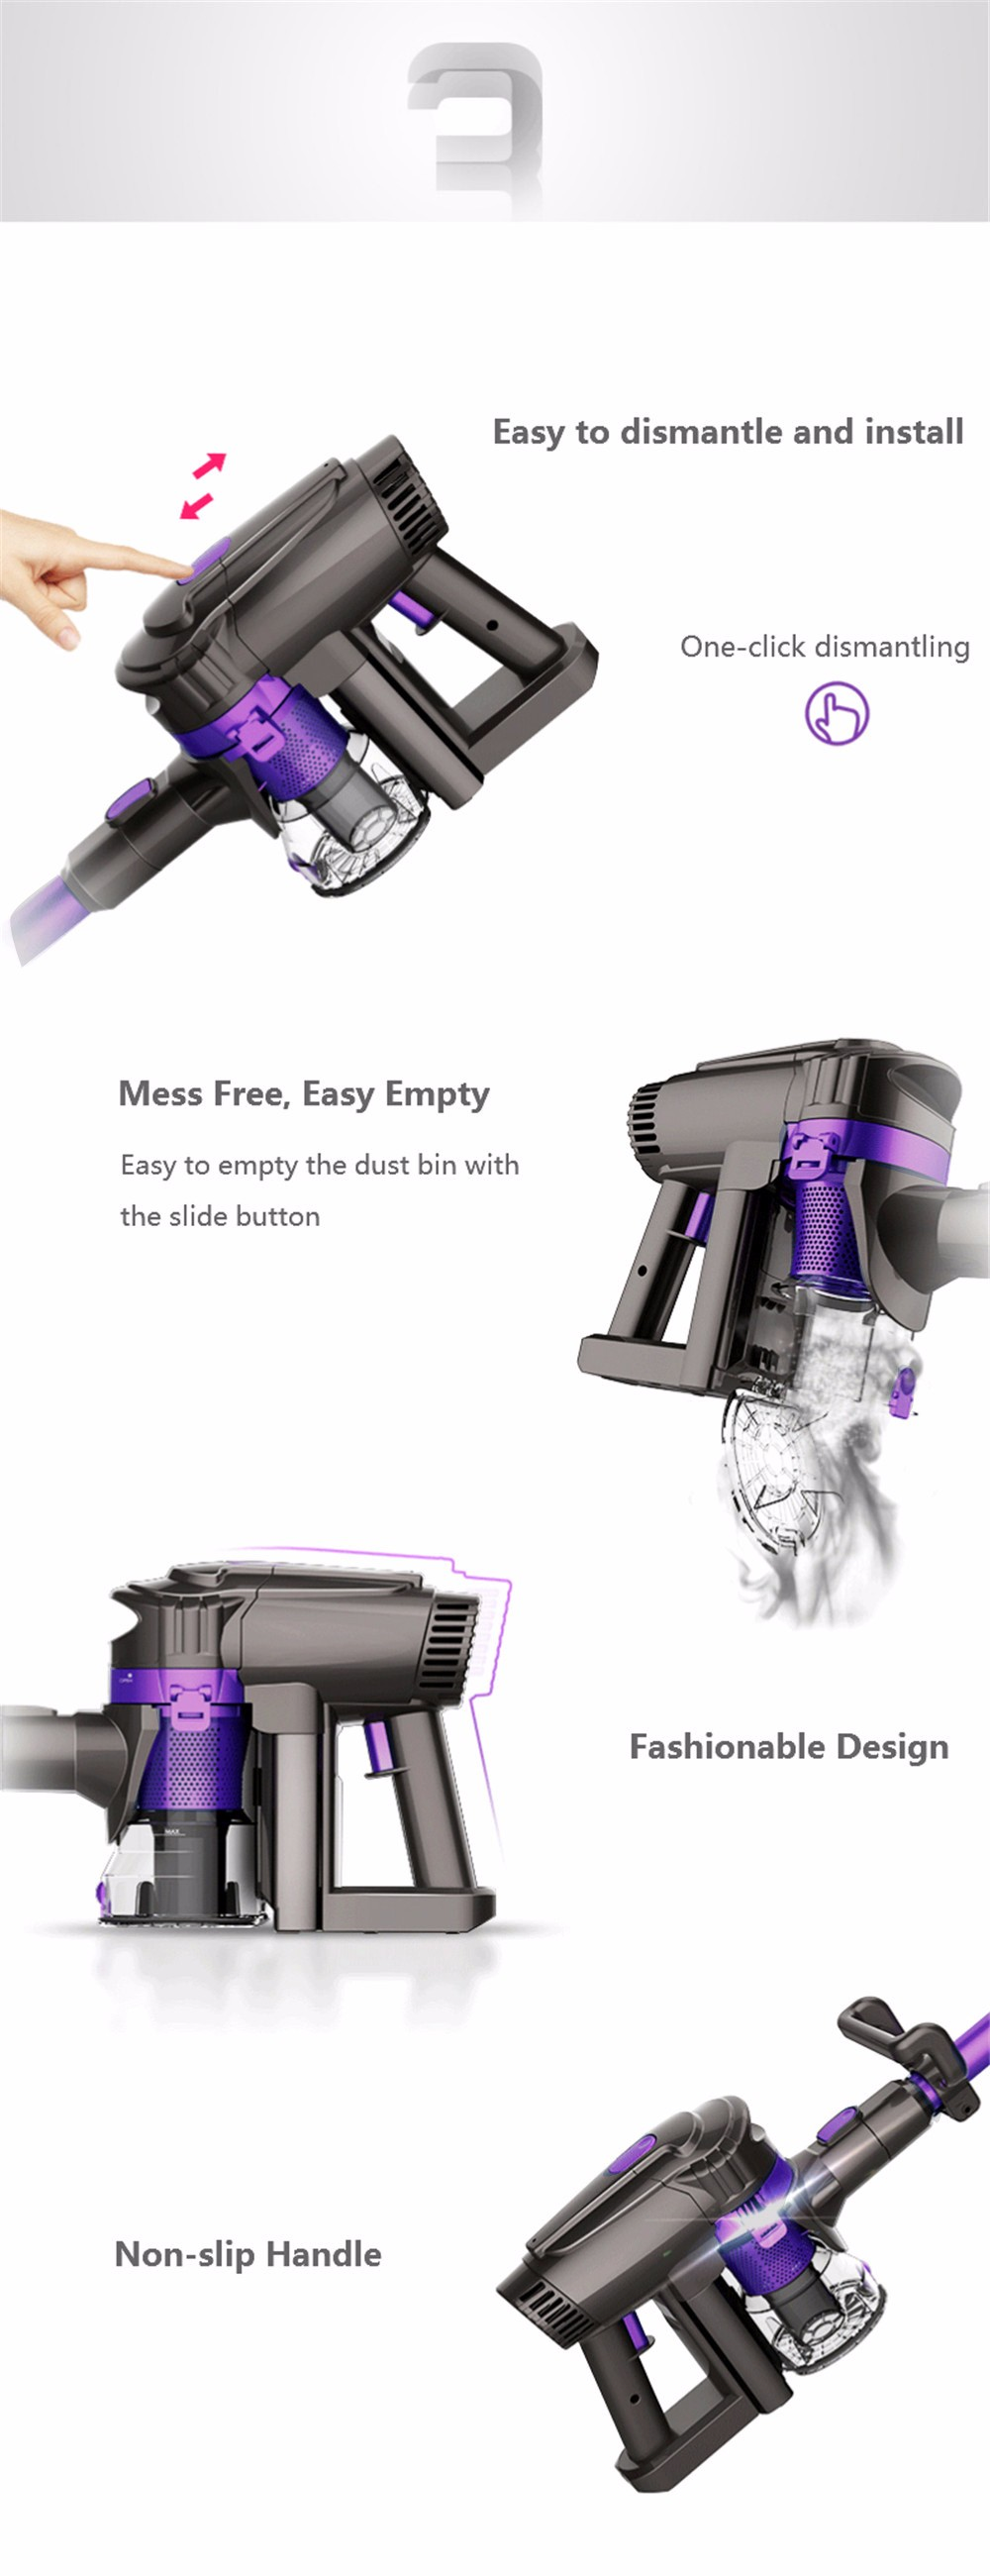 Dibea F6 2-in-1 Powerful Wireless Upright Vacuum Cleaner with Cleaning Cloth